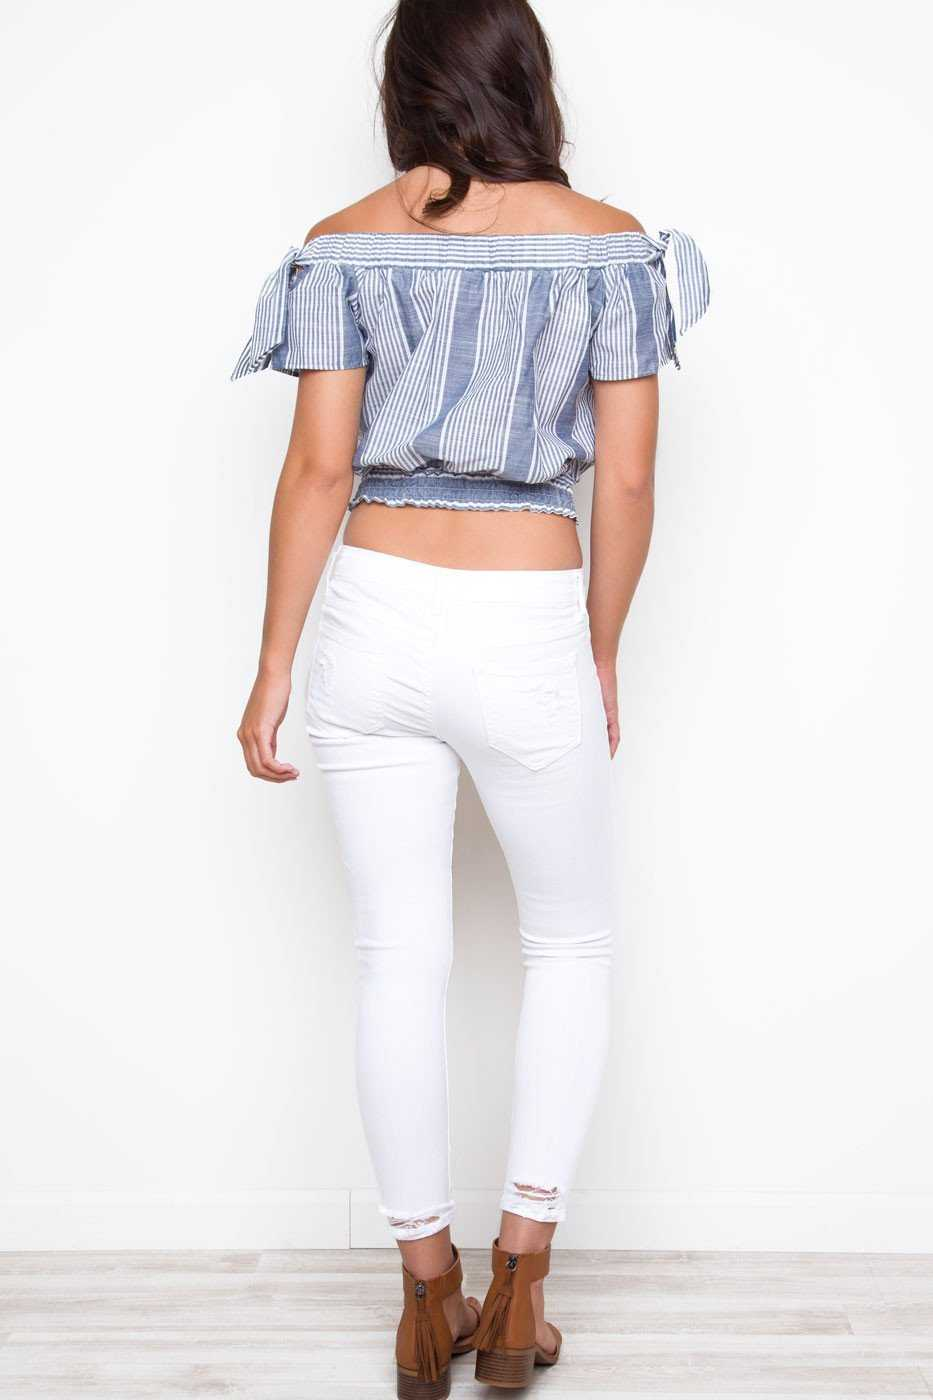 Pants - Can't Help It Distressed Jeans - White